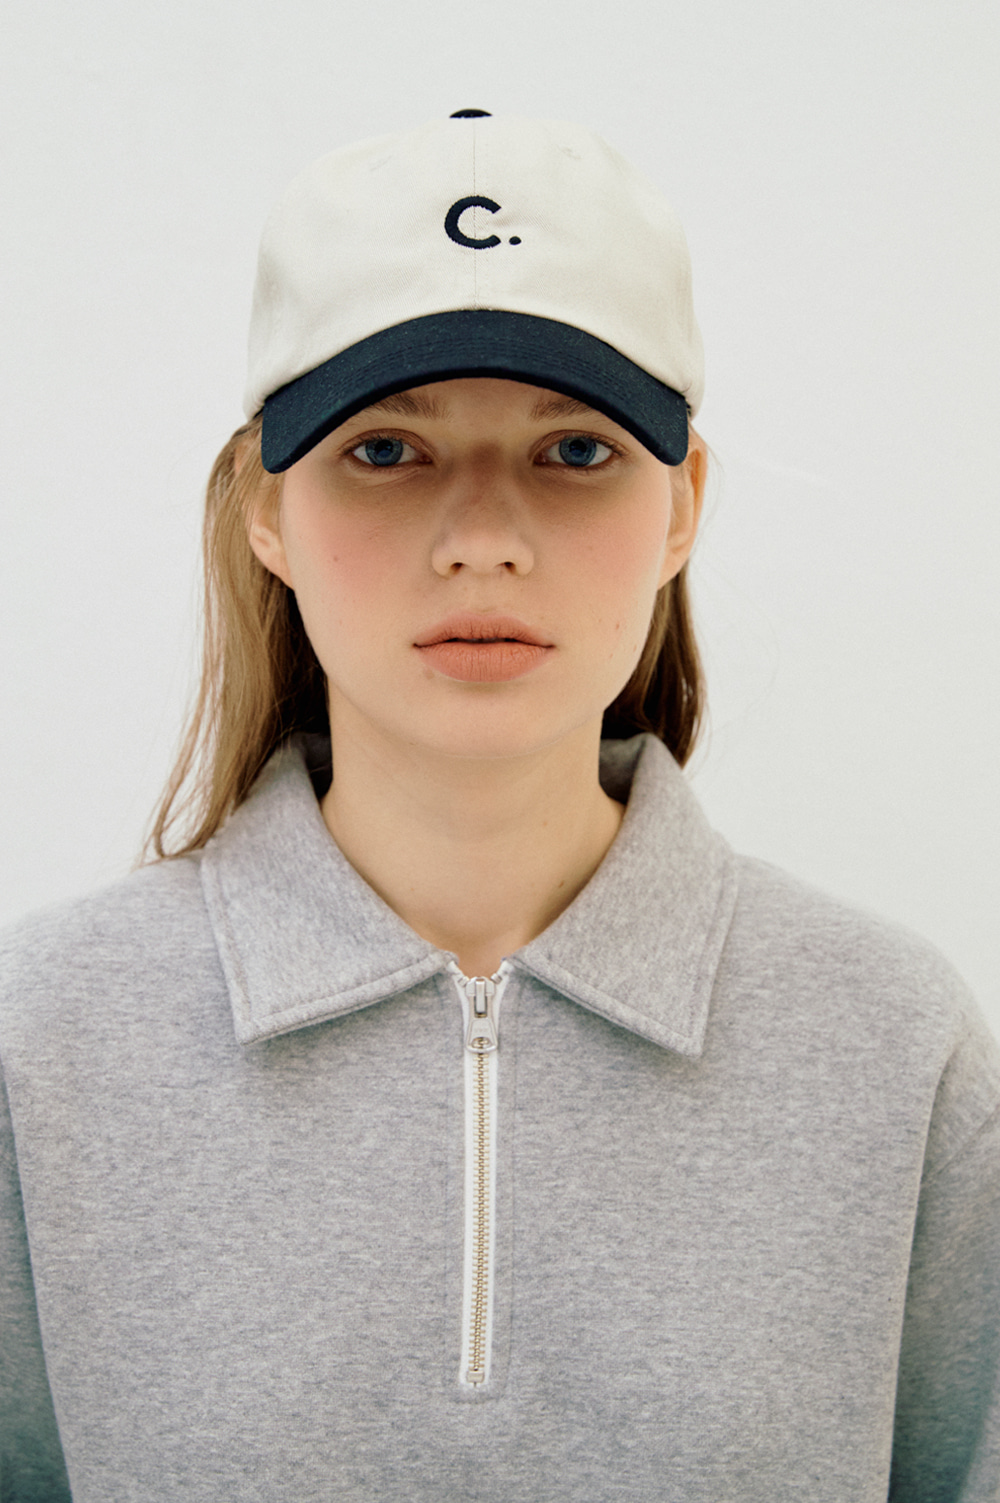 Basic Fit Ball Cap  (Beige+Black)